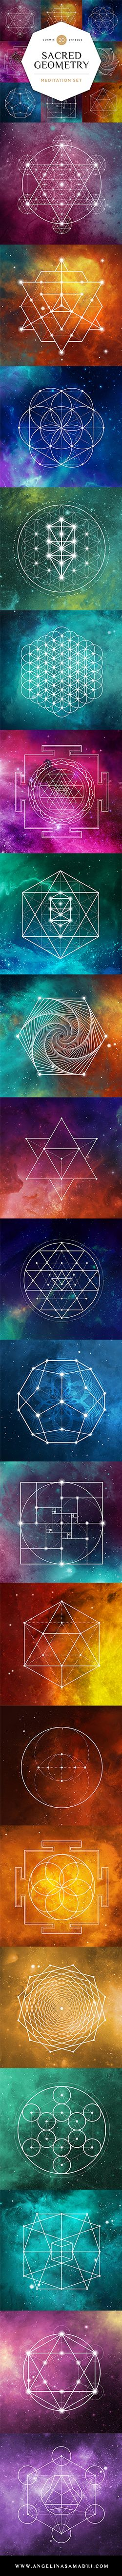 Studies have shown that meditating on sacred geometry can help strengthen the connection between the right